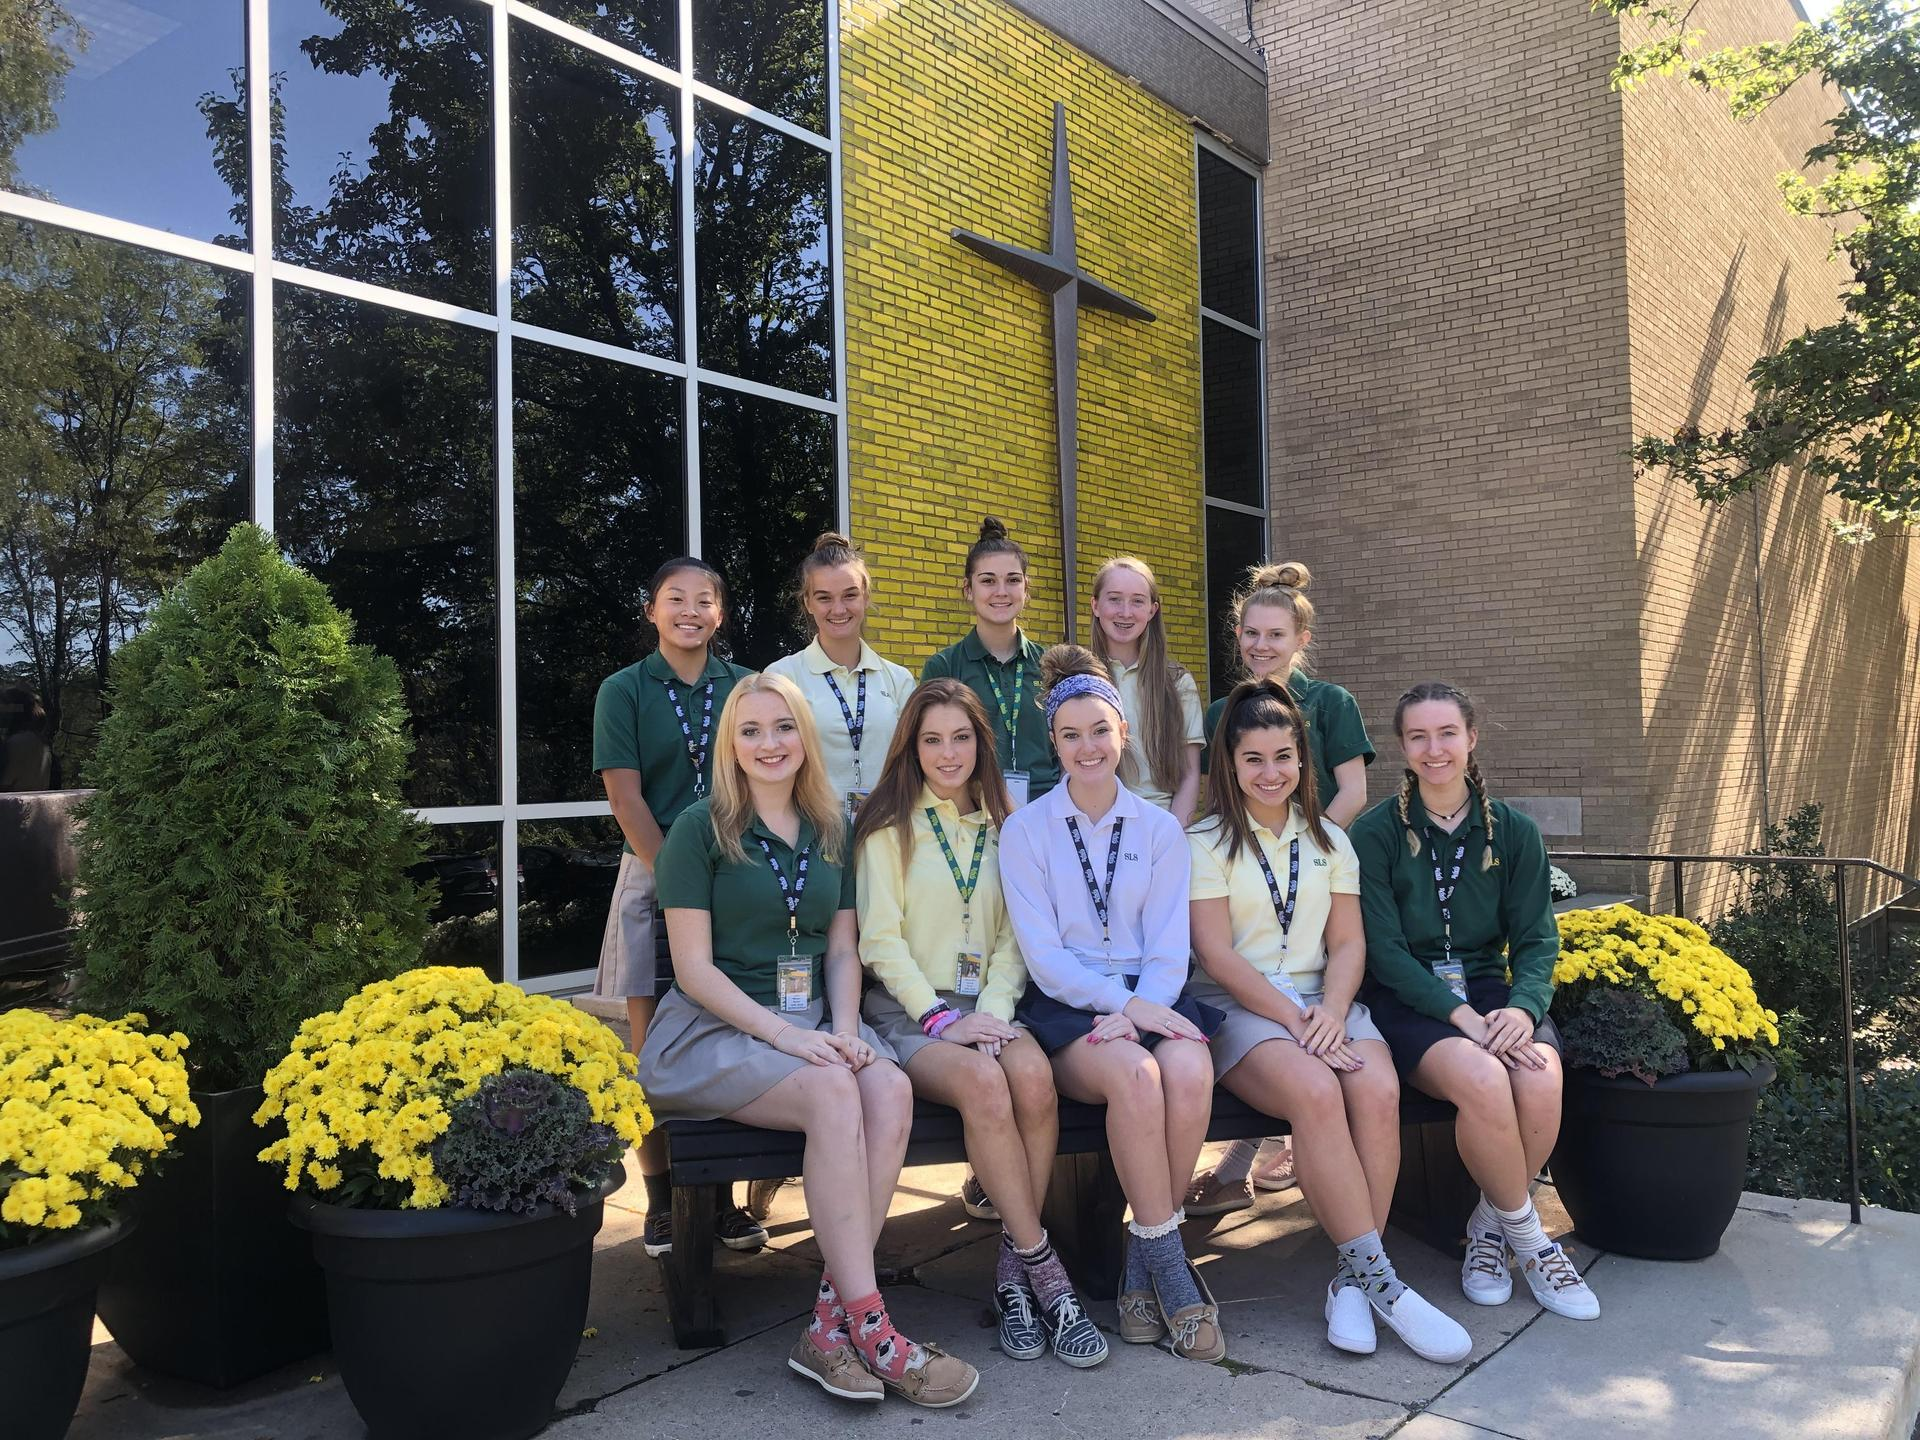 Girls in Student Council pose for International Day of the Girl